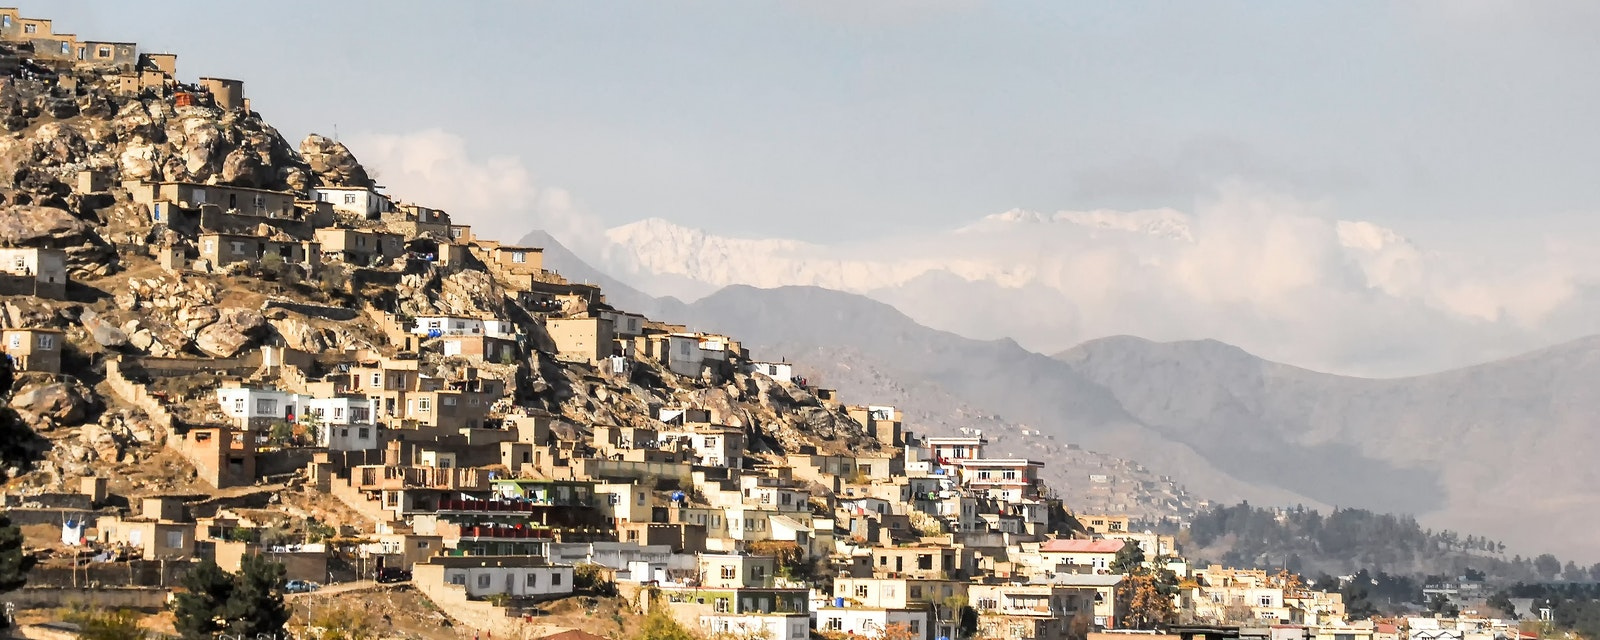 Informal,Settlements,In,Kabul,Afghanistan,On,A,Hill